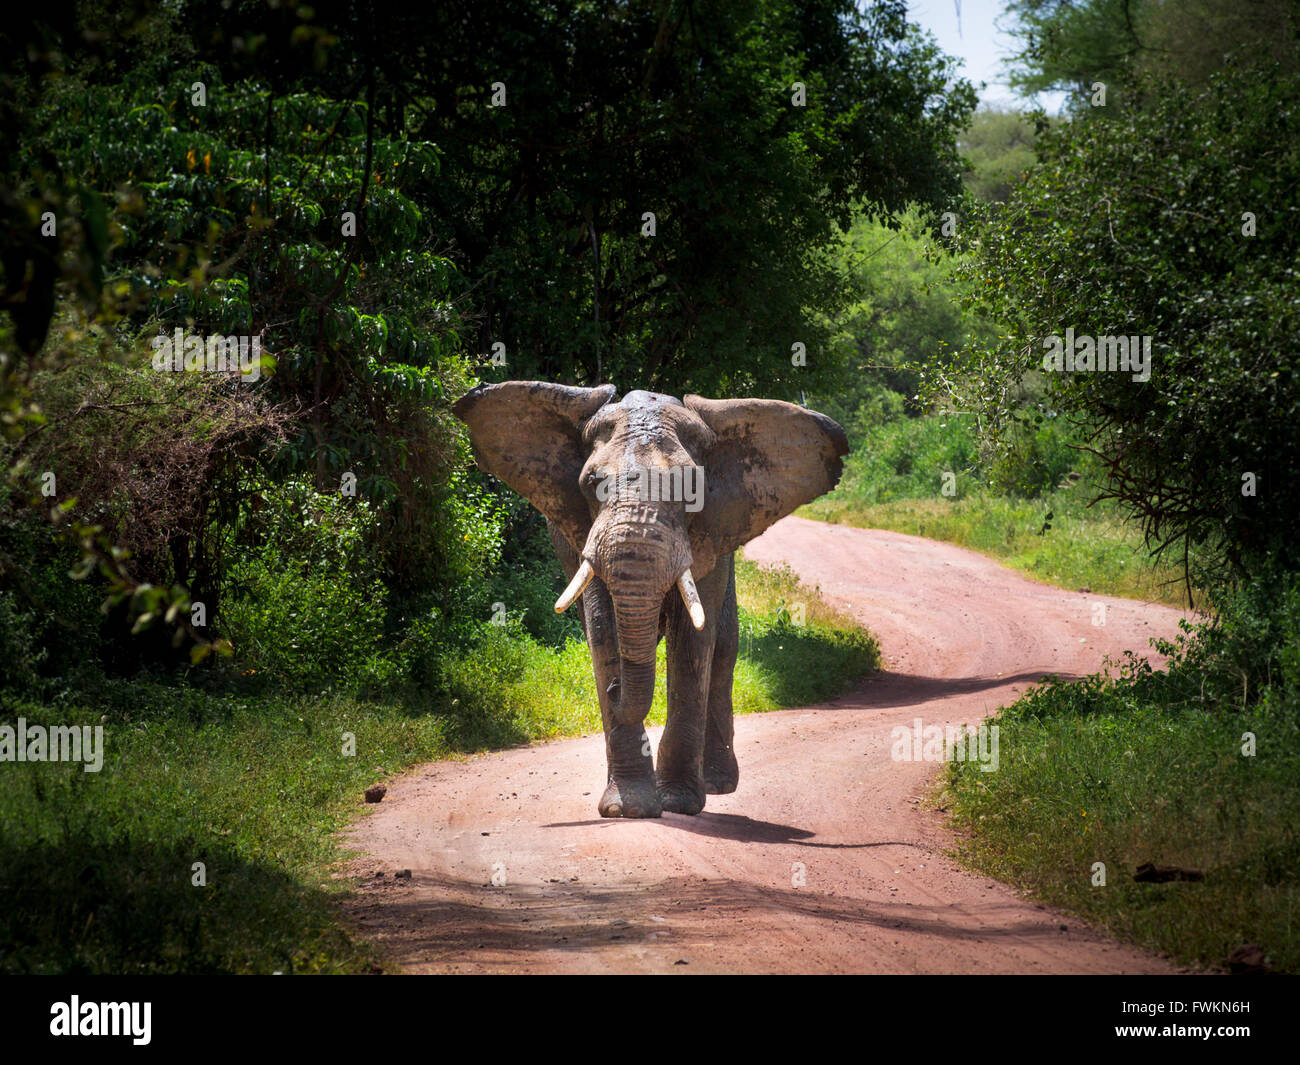 Large bull elephant (Loxodonta africana) walking on road in Lake Manyara National Park, Tanzania, Africa - Stock Image